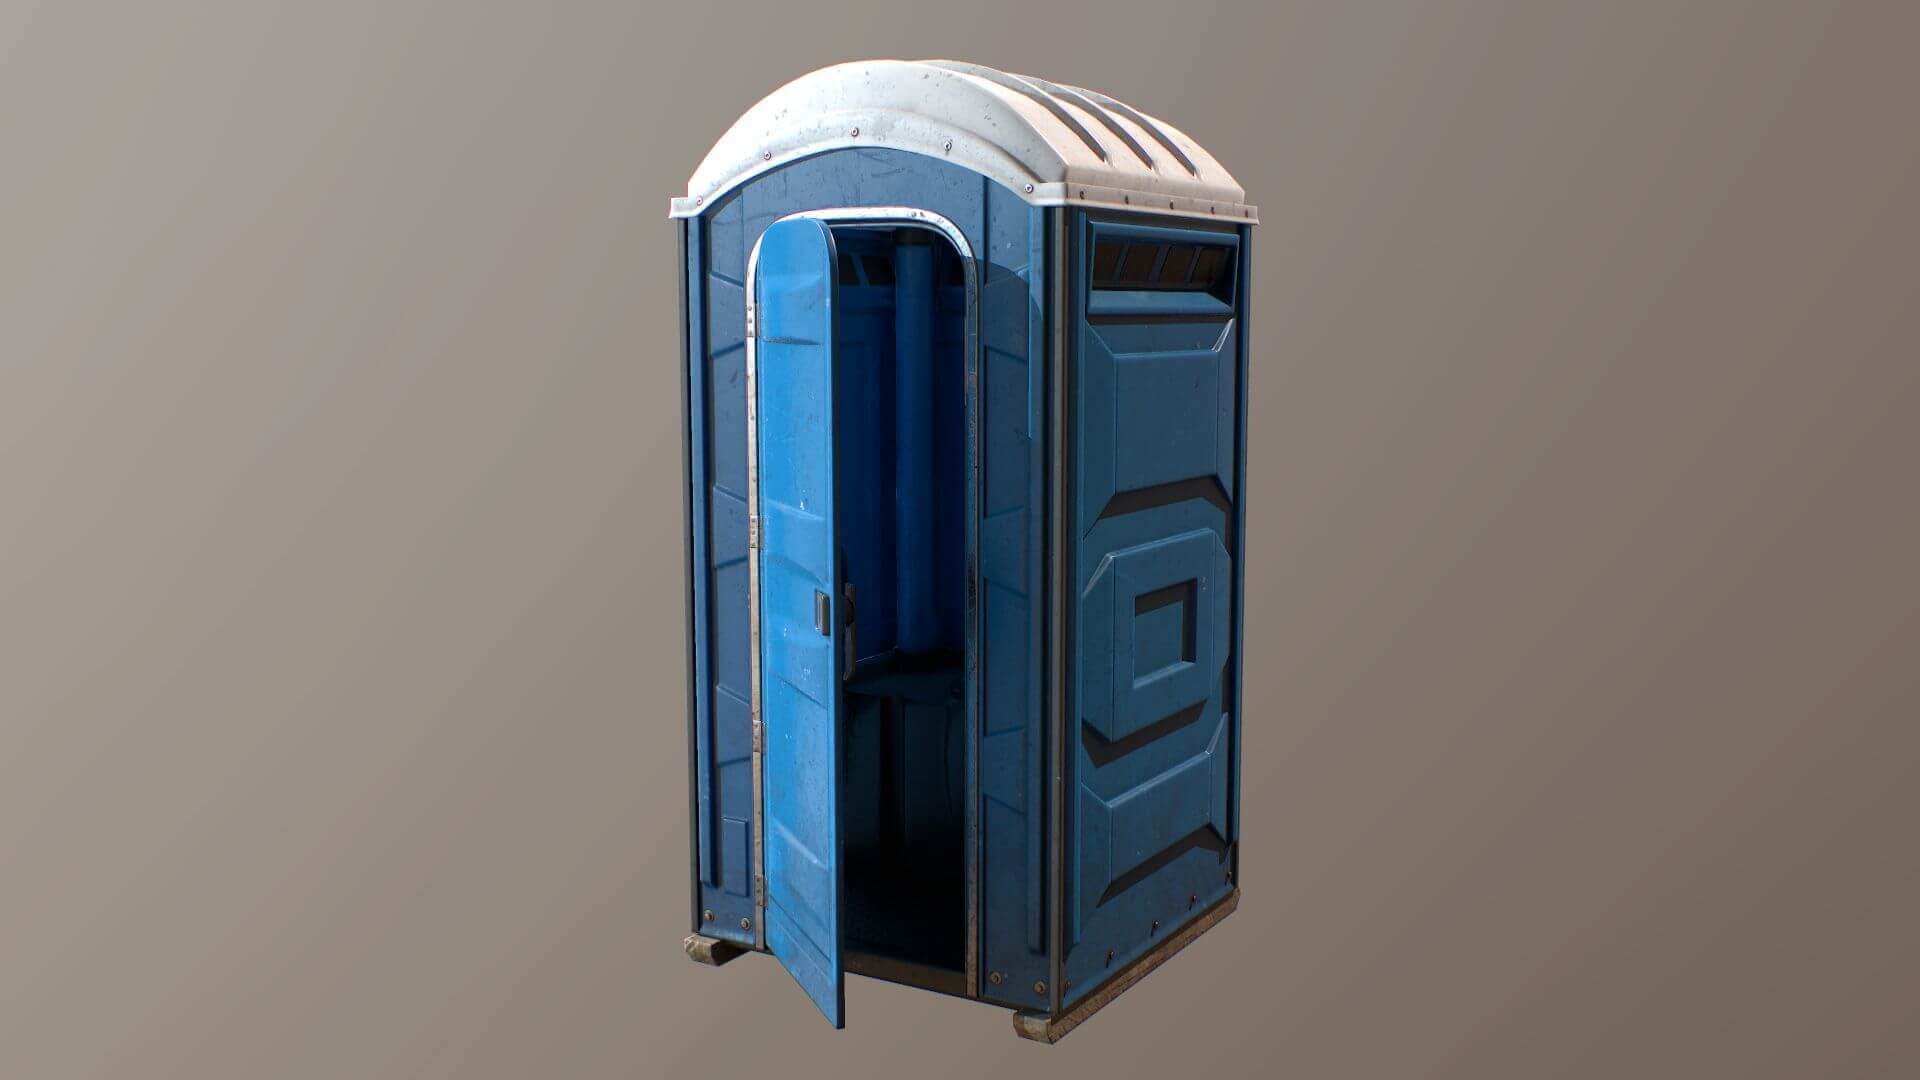 Portable Toilet-Charleston Septic Tank Services, Installation, & Repairs-We offer Septic Service & Repairs, Septic Tank Installations, Septic Tank Cleaning, Commercial, Septic System, Drain Cleaning, Line Snaking, Portable Toilet, Grease Trap Pumping & Cleaning, Septic Tank Pumping, Sewage Pump, Sewer Line Repair, Septic Tank Replacement, Septic Maintenance, Sewer Line Replacement, Porta Potty Rentals